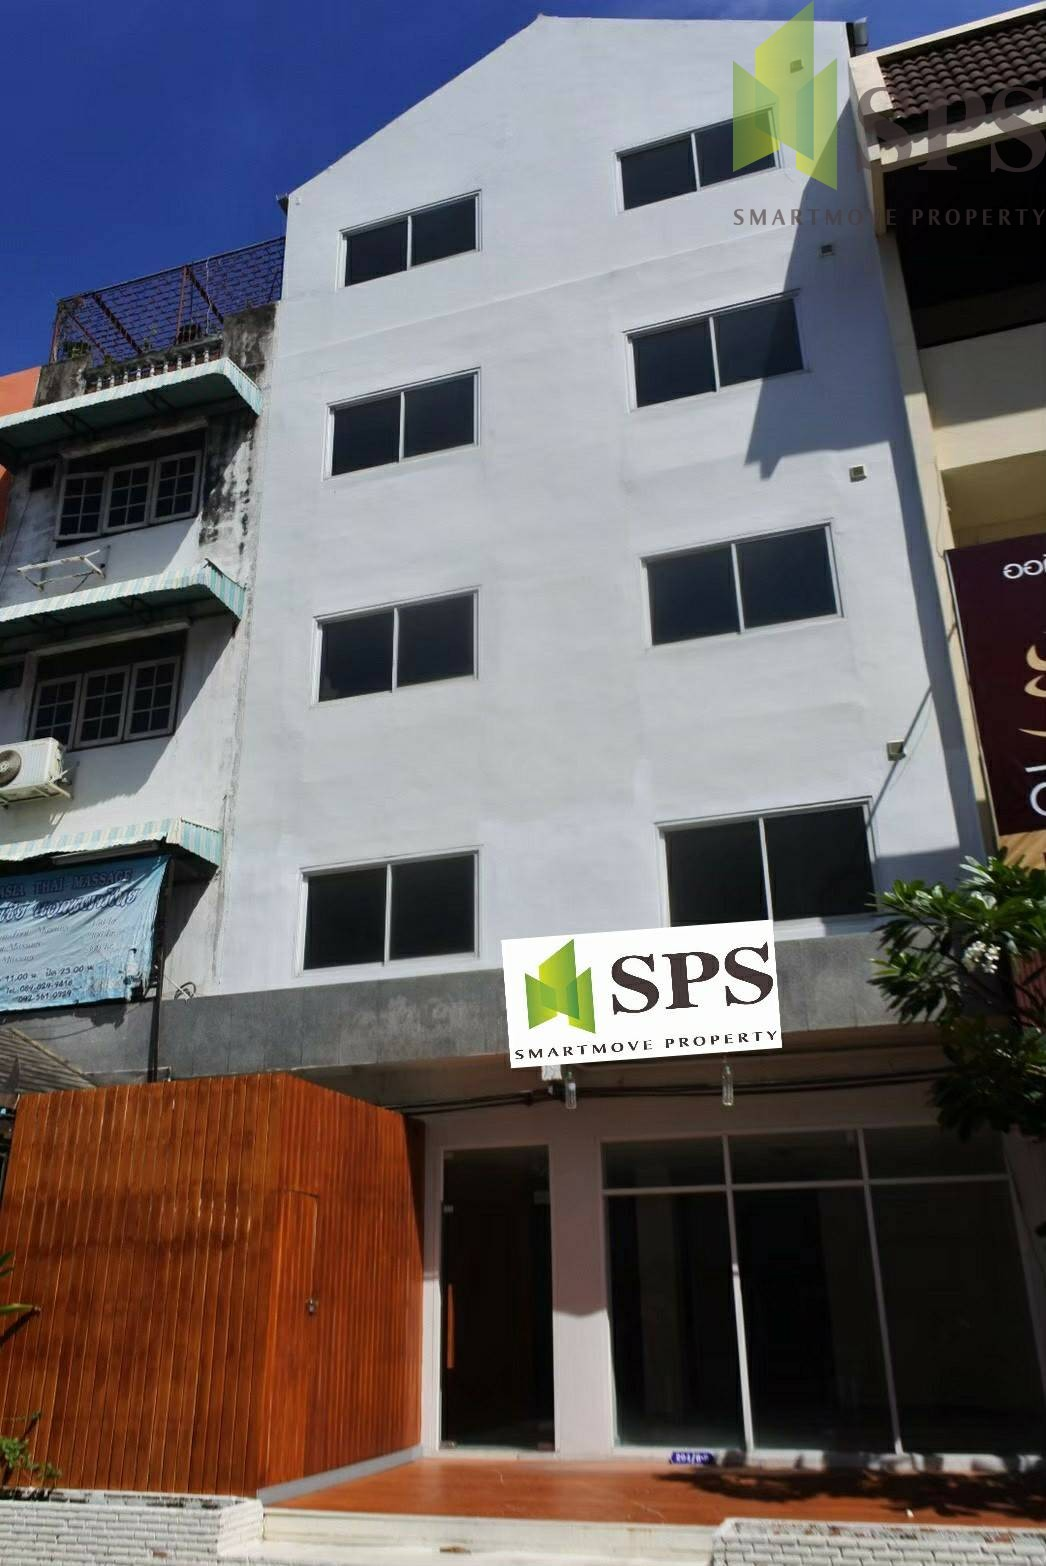 Commercial for Rent in Sukhumvit 77 (SPS P270 )